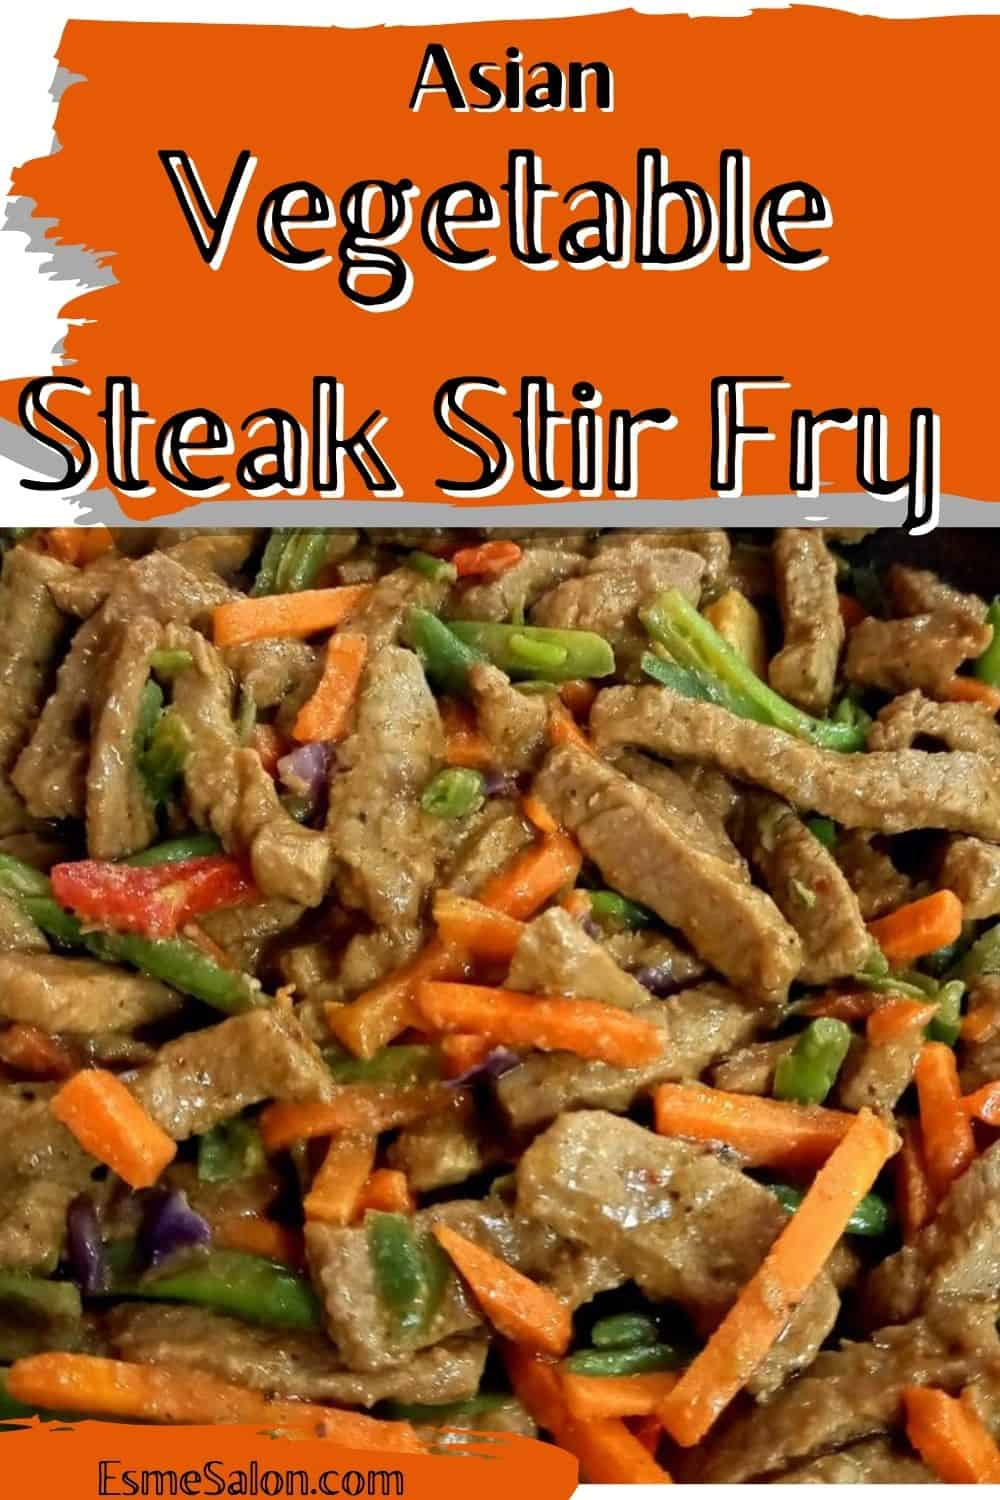 An delectable plate of Asian Vegetable Steak Stir